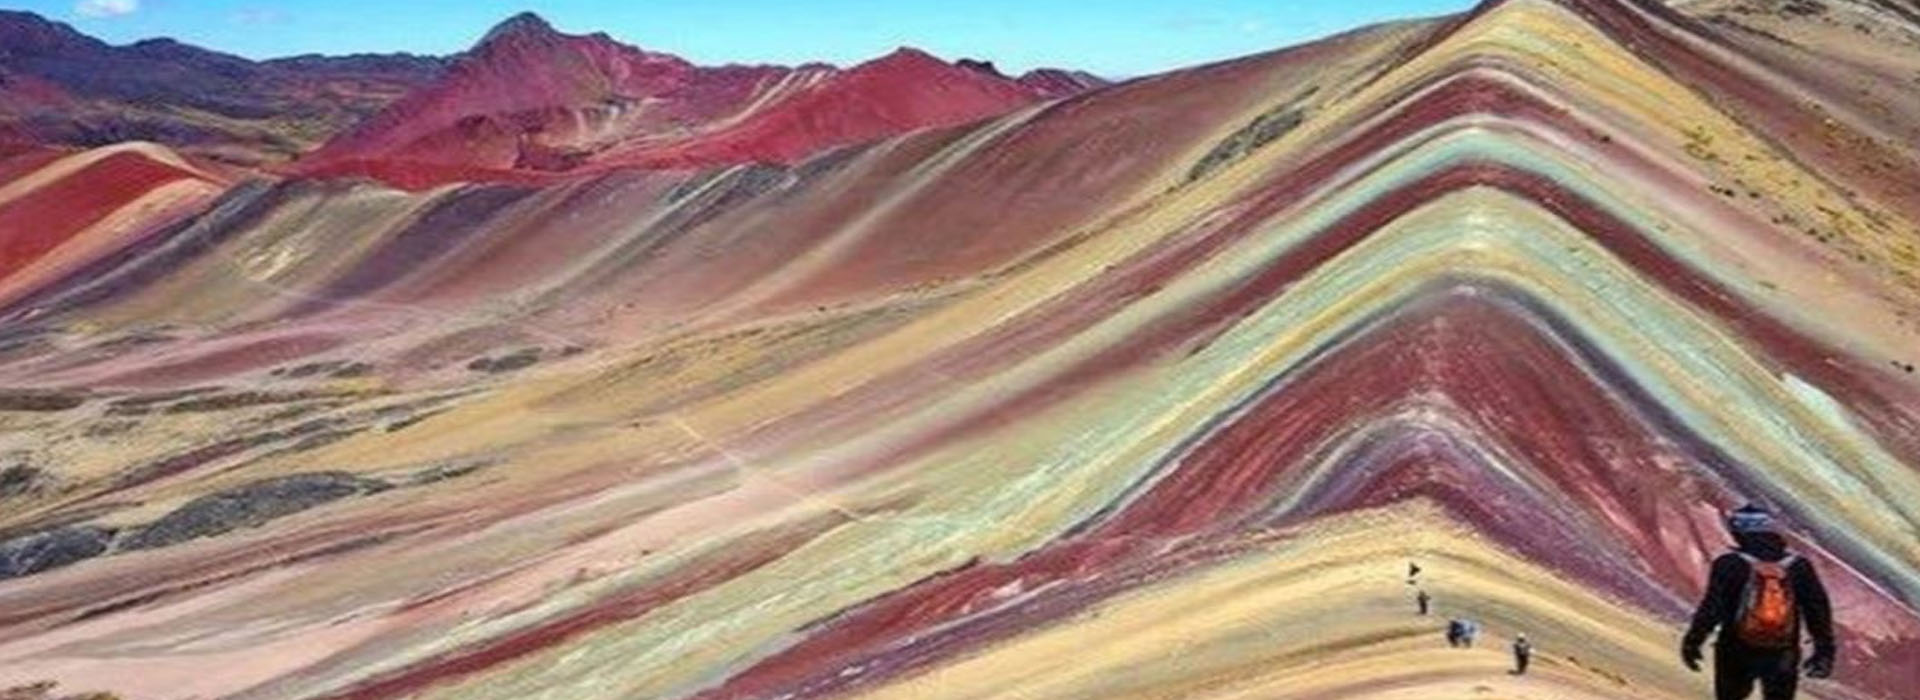 The Rainbow Mountain 1 day